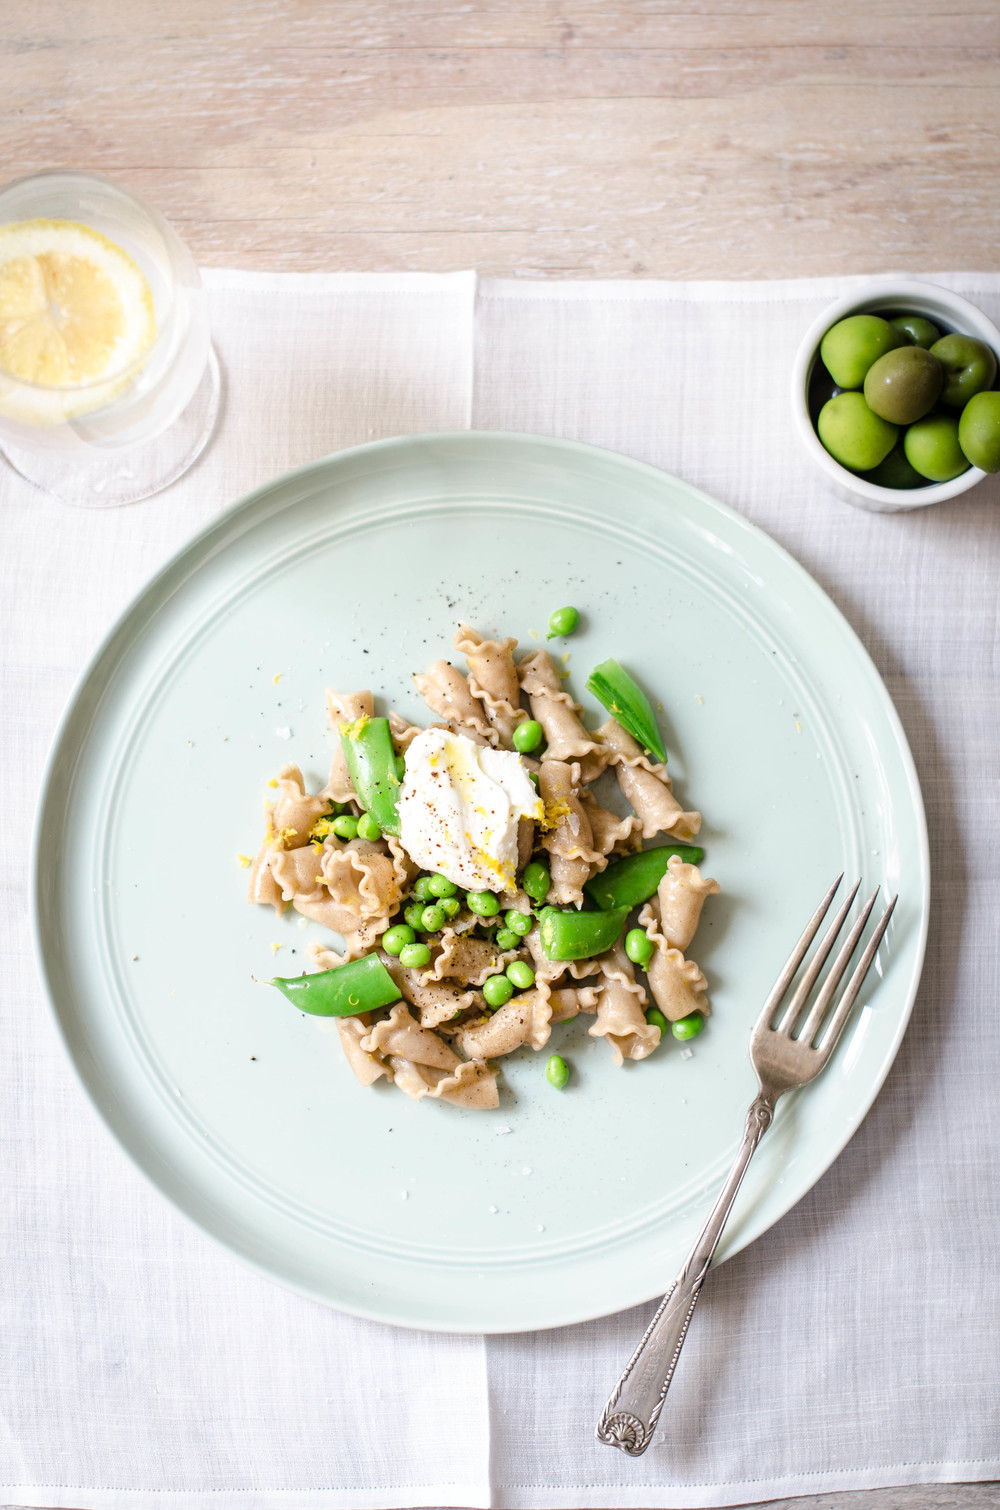 ROSE & IVY JOURNAL LEMONY PASTA WITH SNAP PEAS & FRESH RICOTTA